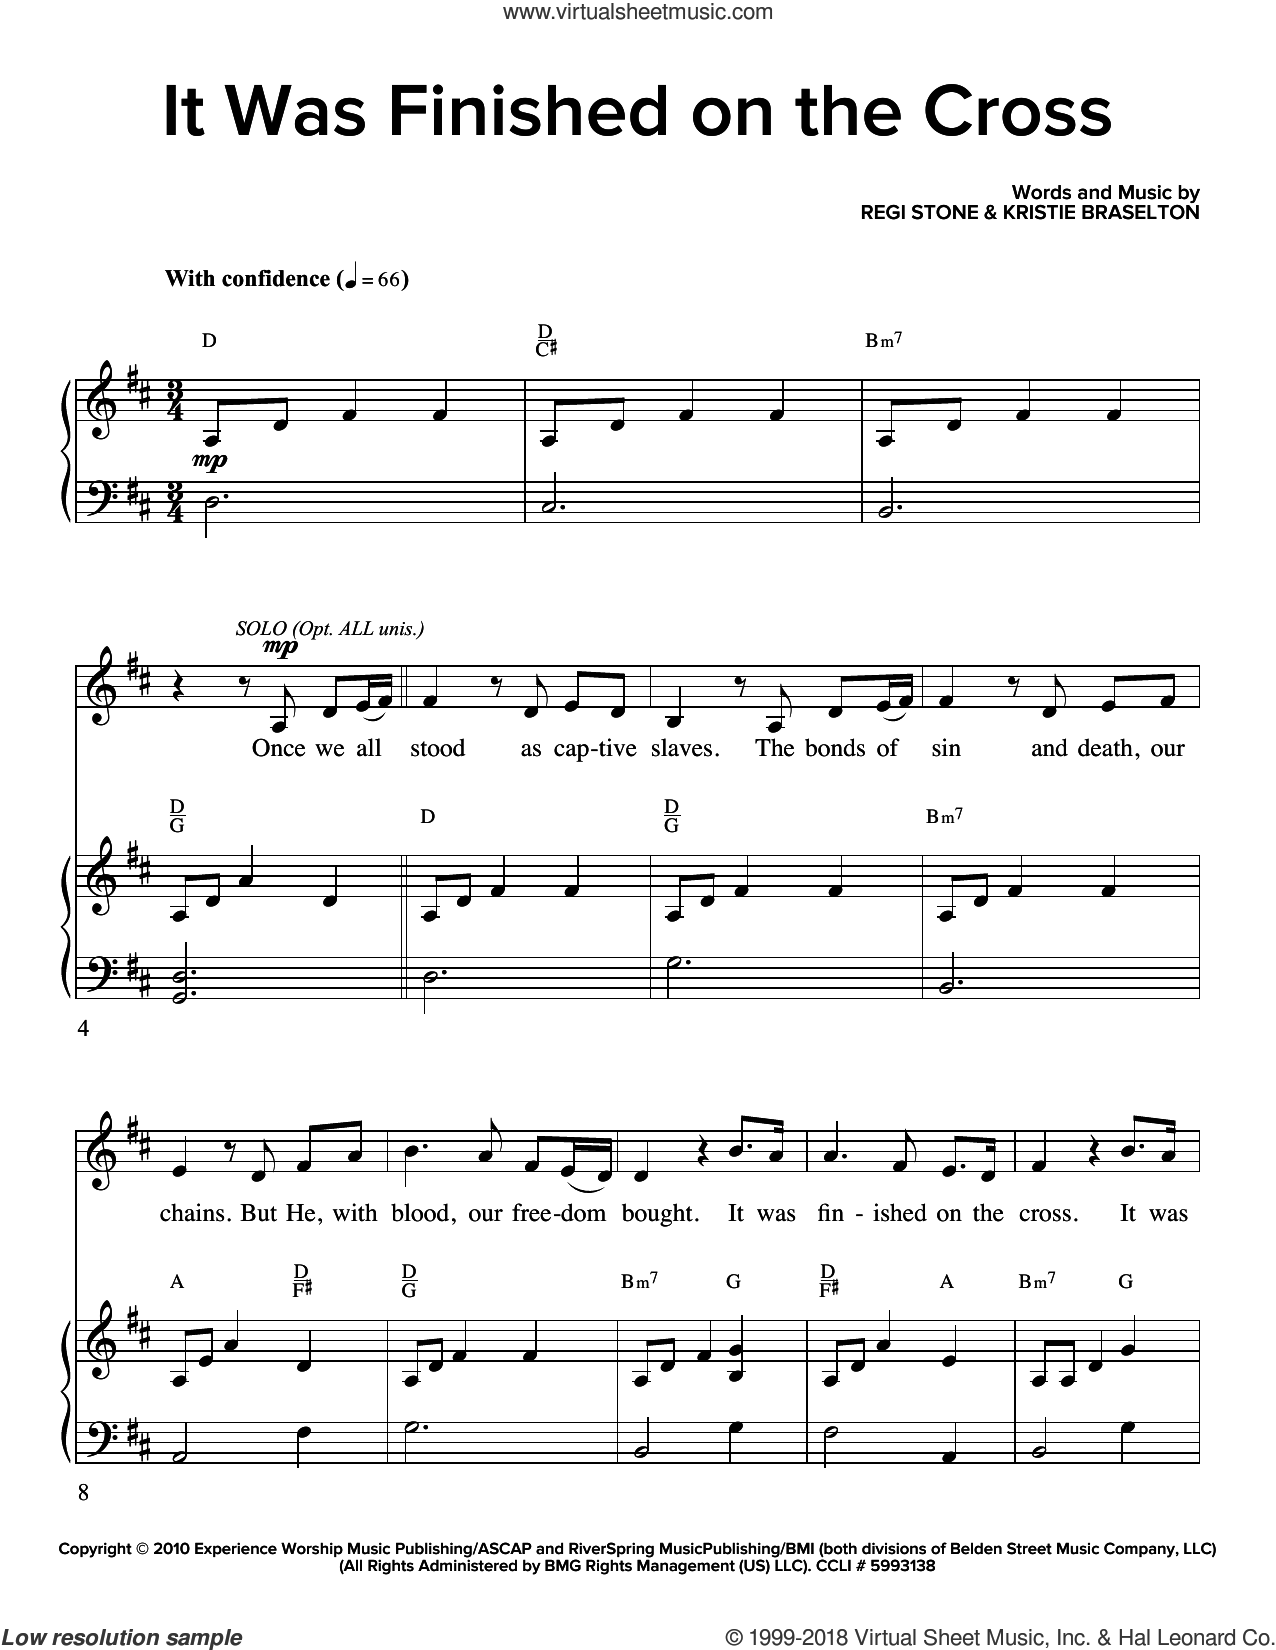 It Was Finished On The Cross sheet music for choir (SATB: soprano, alto, tenor, bass) by Regi Stone and Kristie Braselton, intermediate skill level